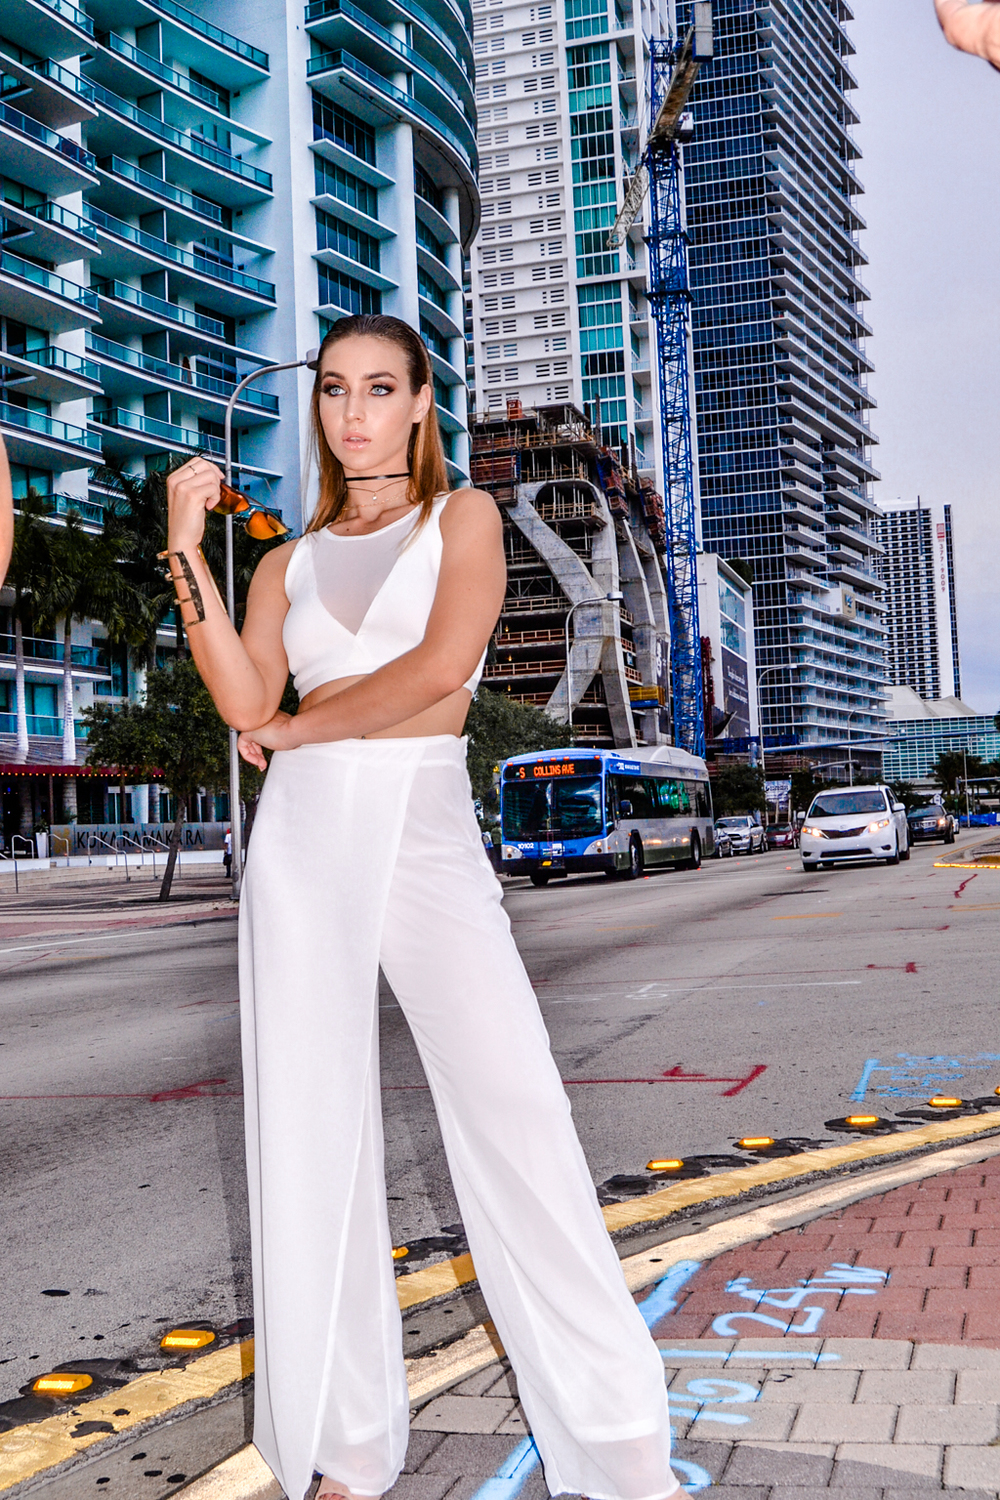 behind-the-scenes-style-link-miami-illy-perez-fashion-photography-11.jpg